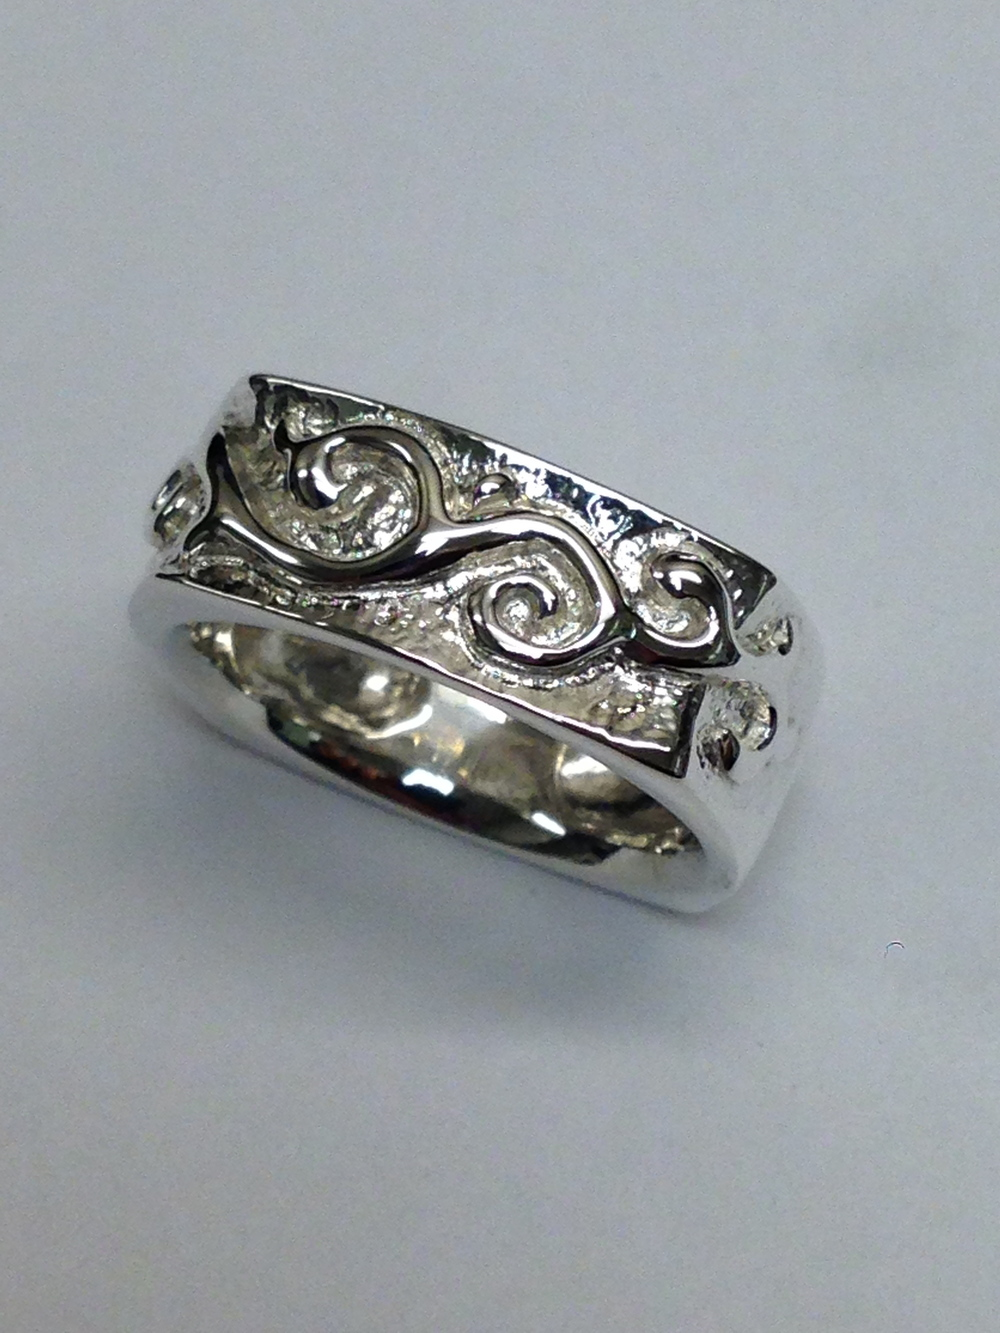 top-view-unique-custom-hand-engraved-scroll-pattern-white-gold-wedding-band-craft-revival-jewelry-store-grand-rapids-west-michigan